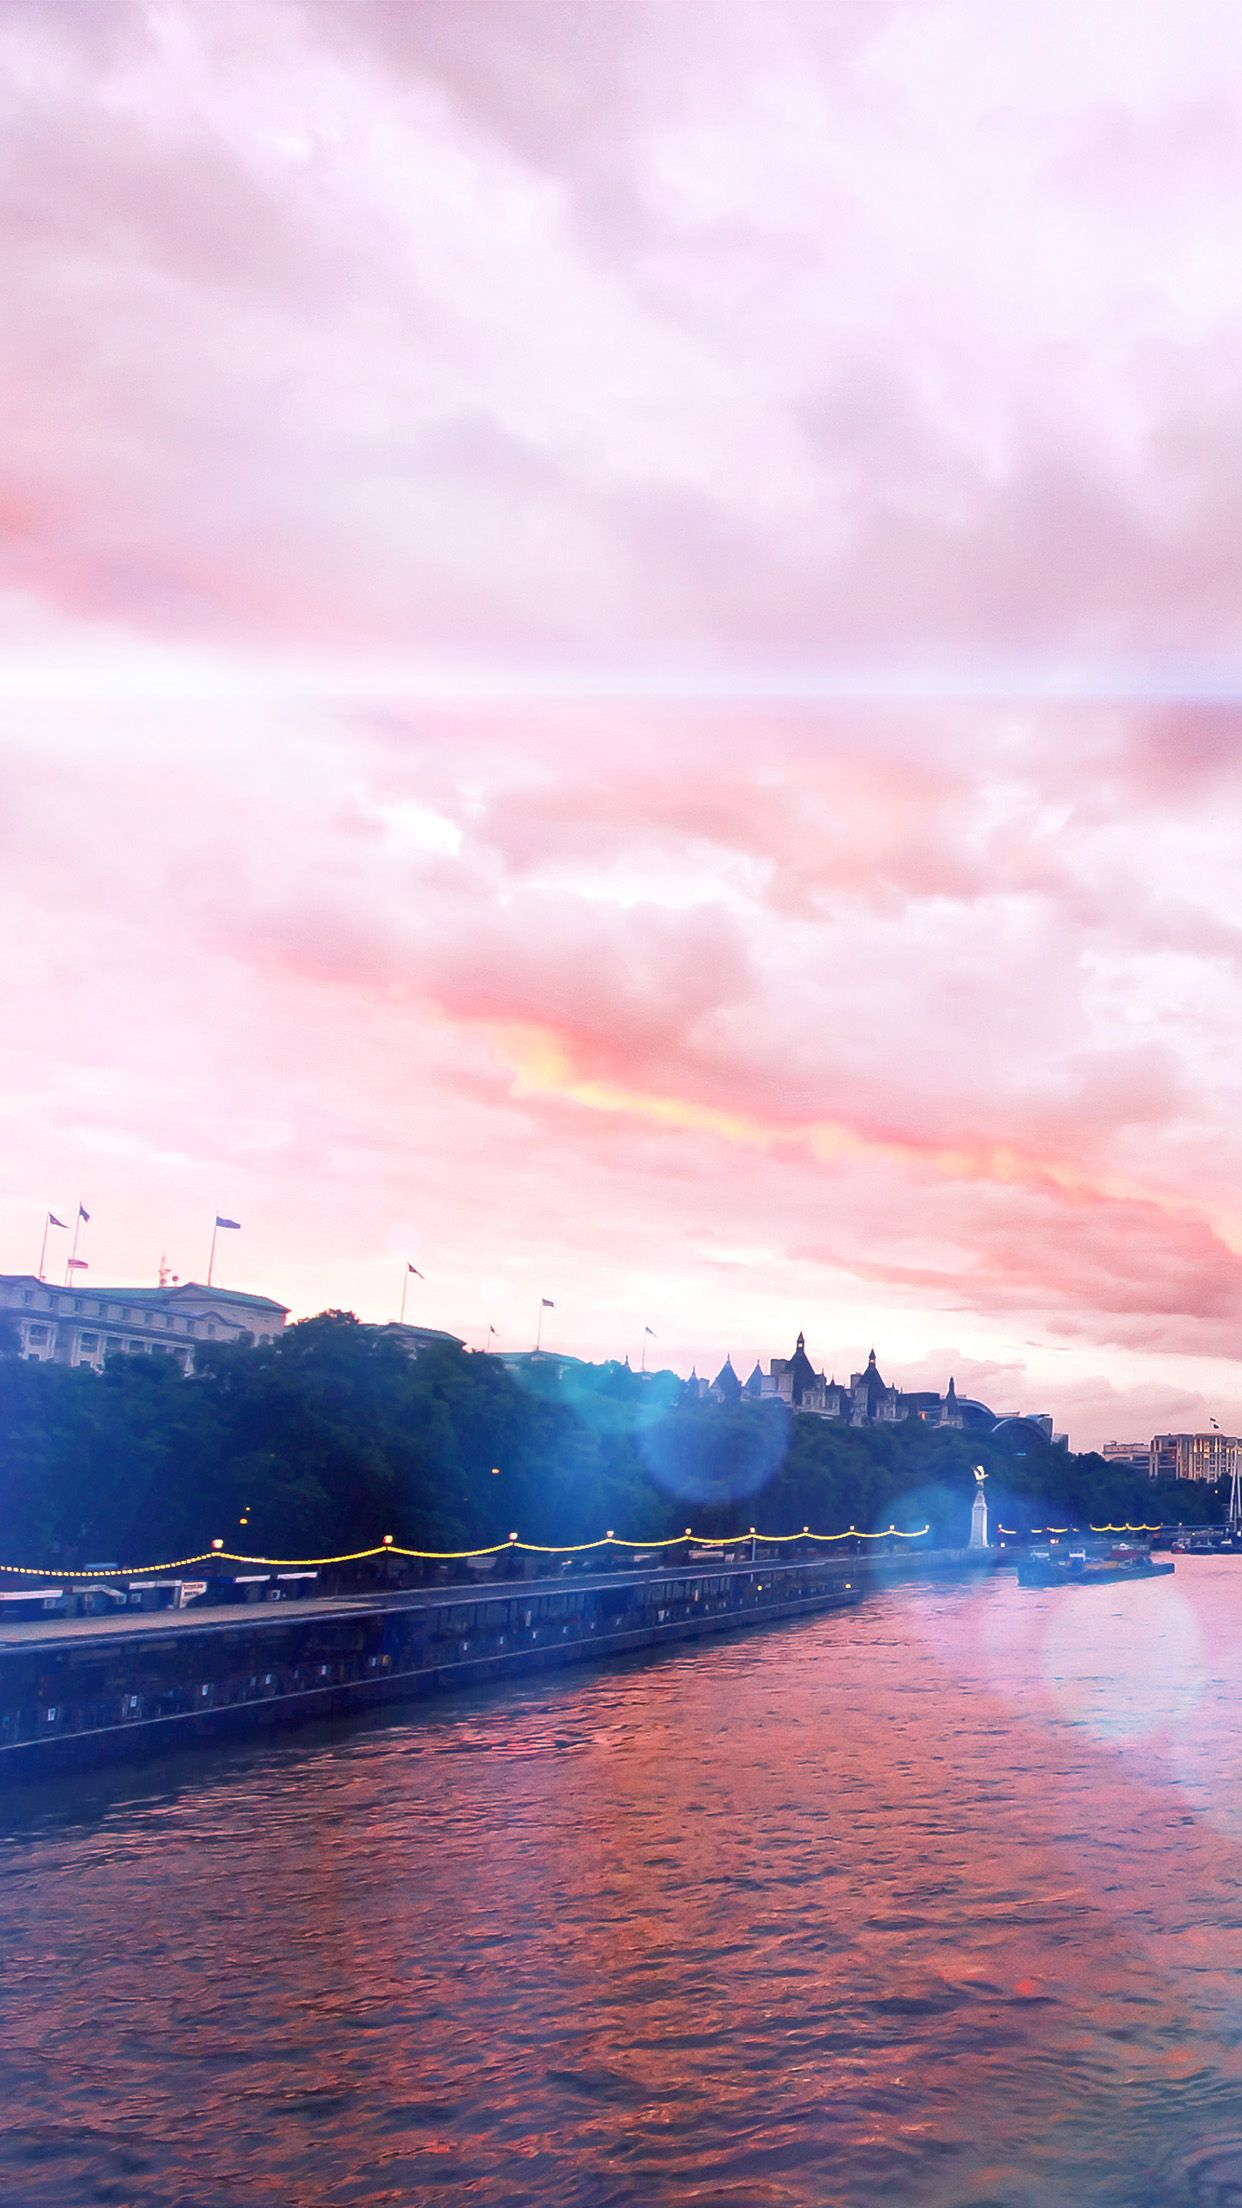 Blue Flare Rainbow River City Flags Sunset Android Wallpaper Rose Gold Wallpaper Iphone Gold Wallpaper Iphone Iphone 6s Wallpaper Rose Gold